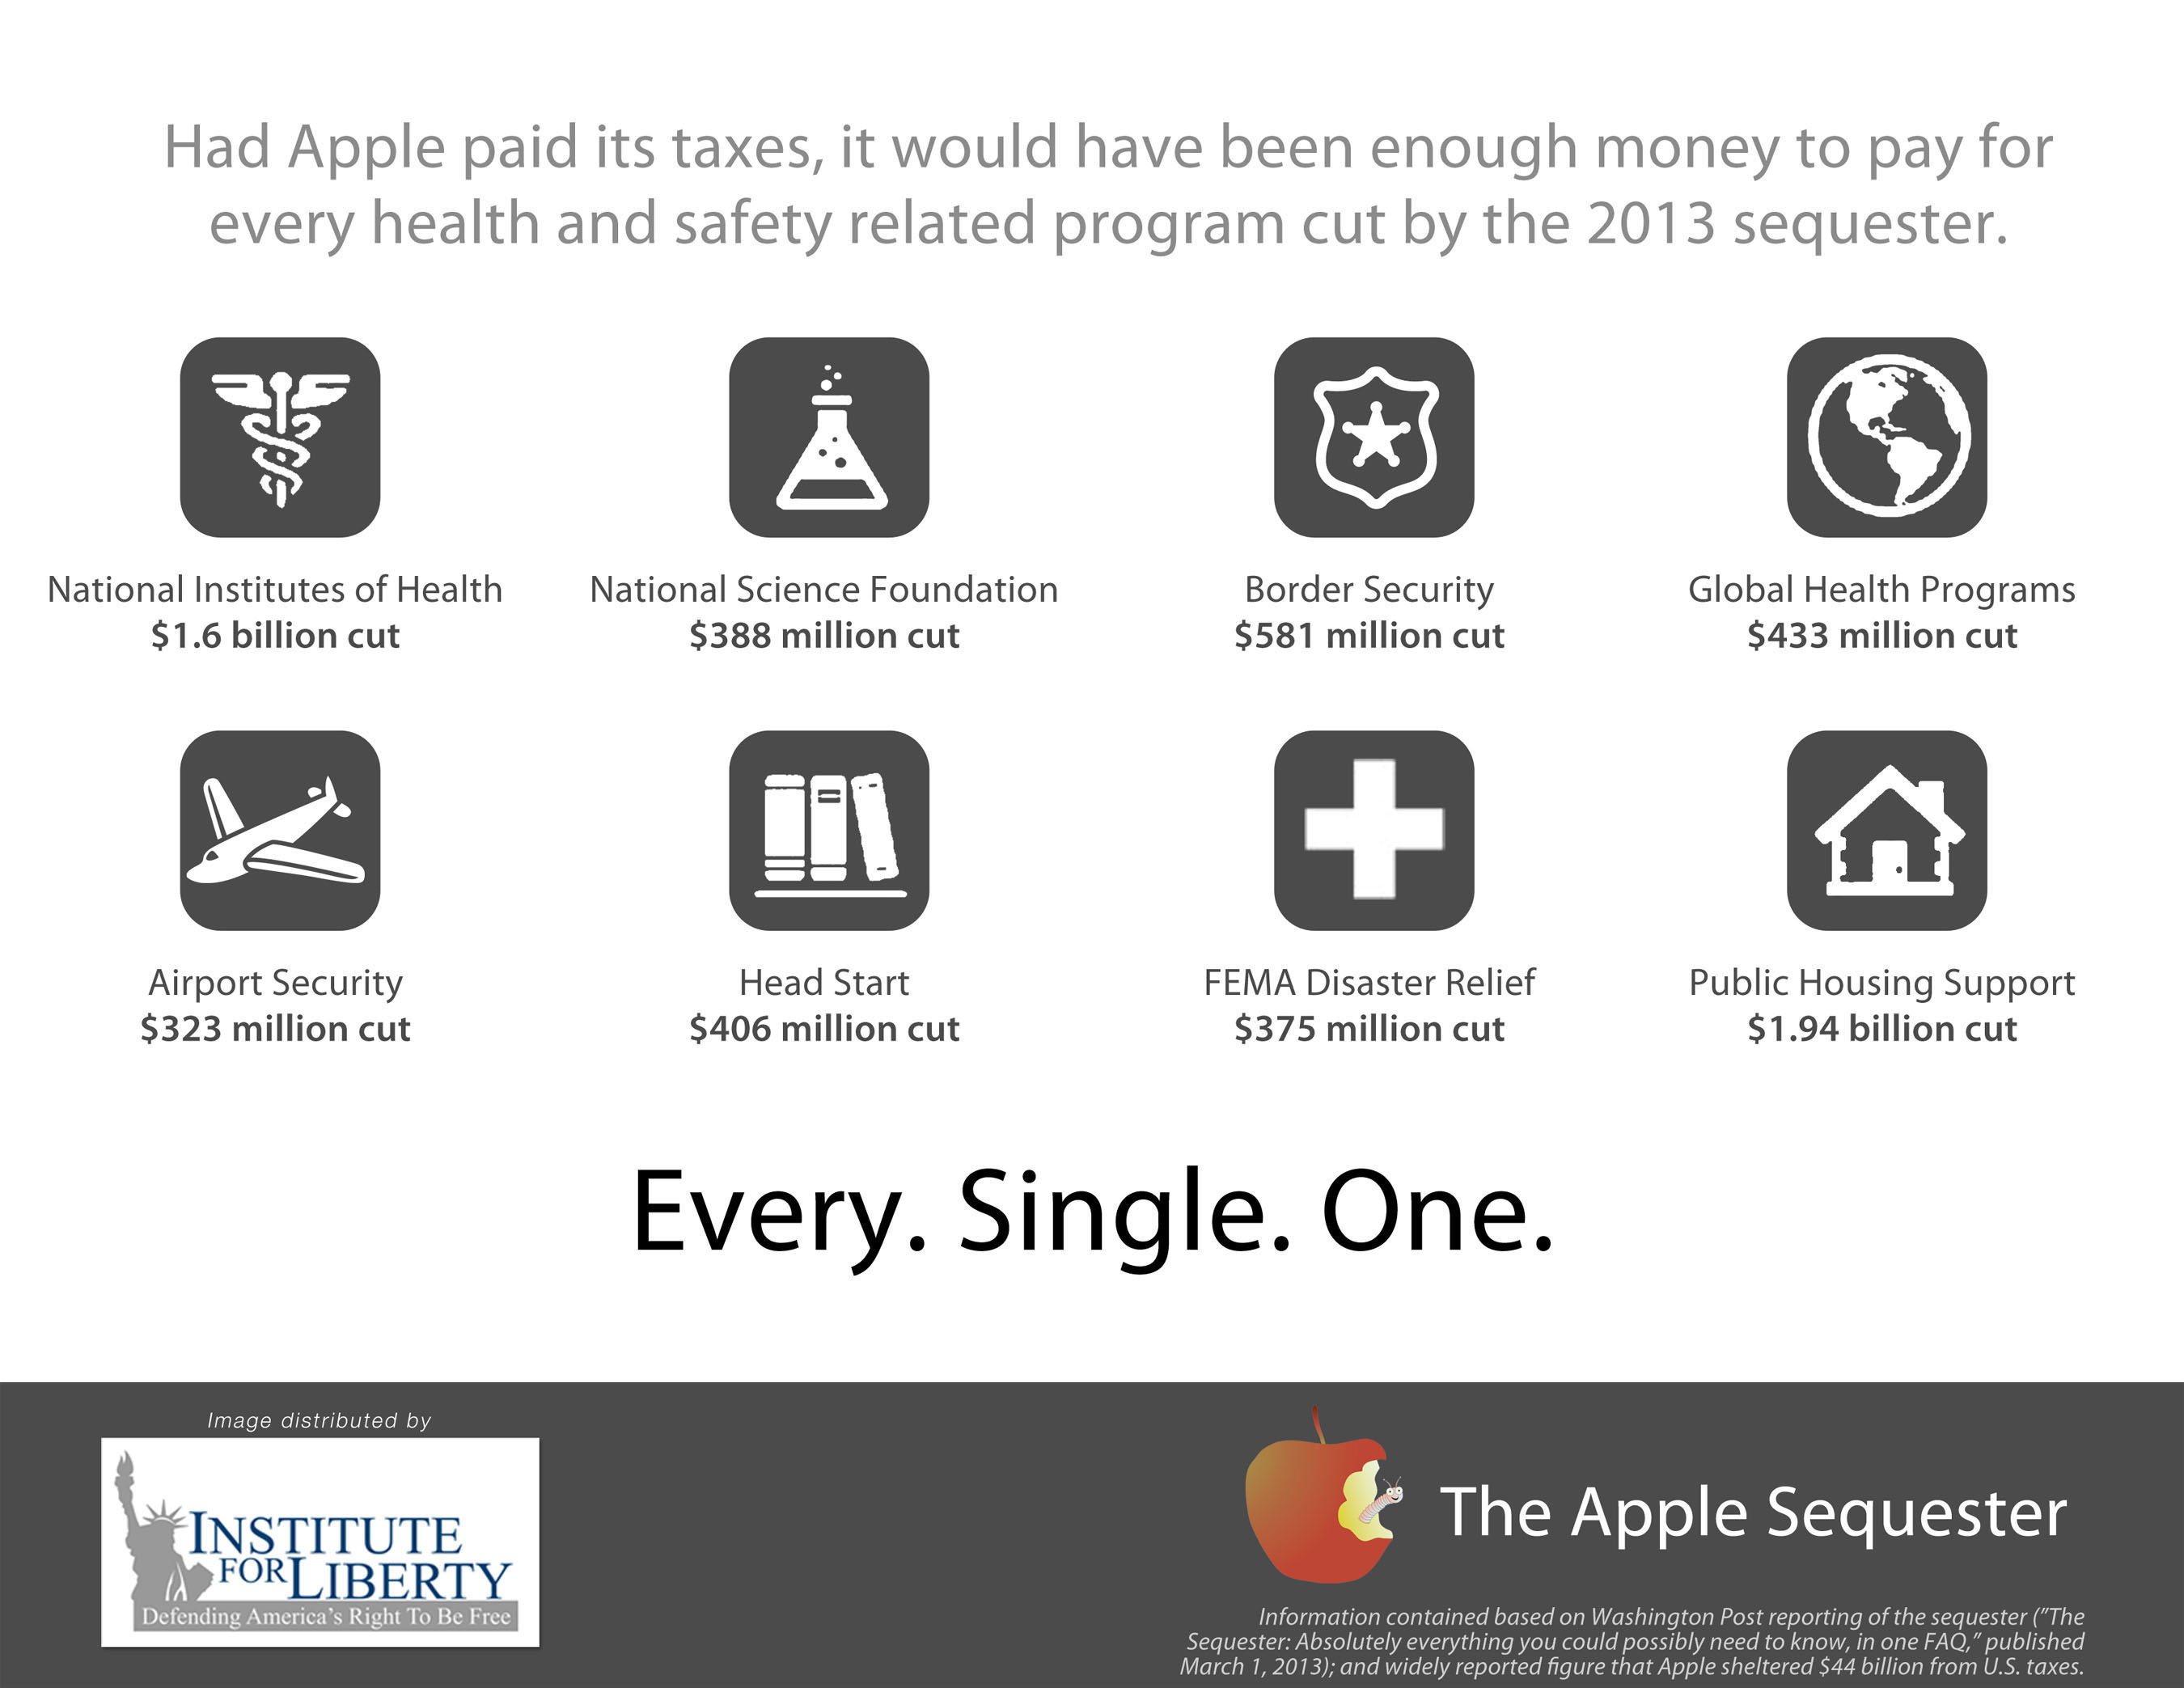 Institute For Liberty: Apple Hides $44 Billion From U.S. Tax Collectors, Enough To Pay For Deep Sequestration Cuts: Had Apple paid its taxes, it would have been enough money to pay for every health and safety related program cut by the 2013 sequester.  (PRNewsFoto/Institute for Liberty)